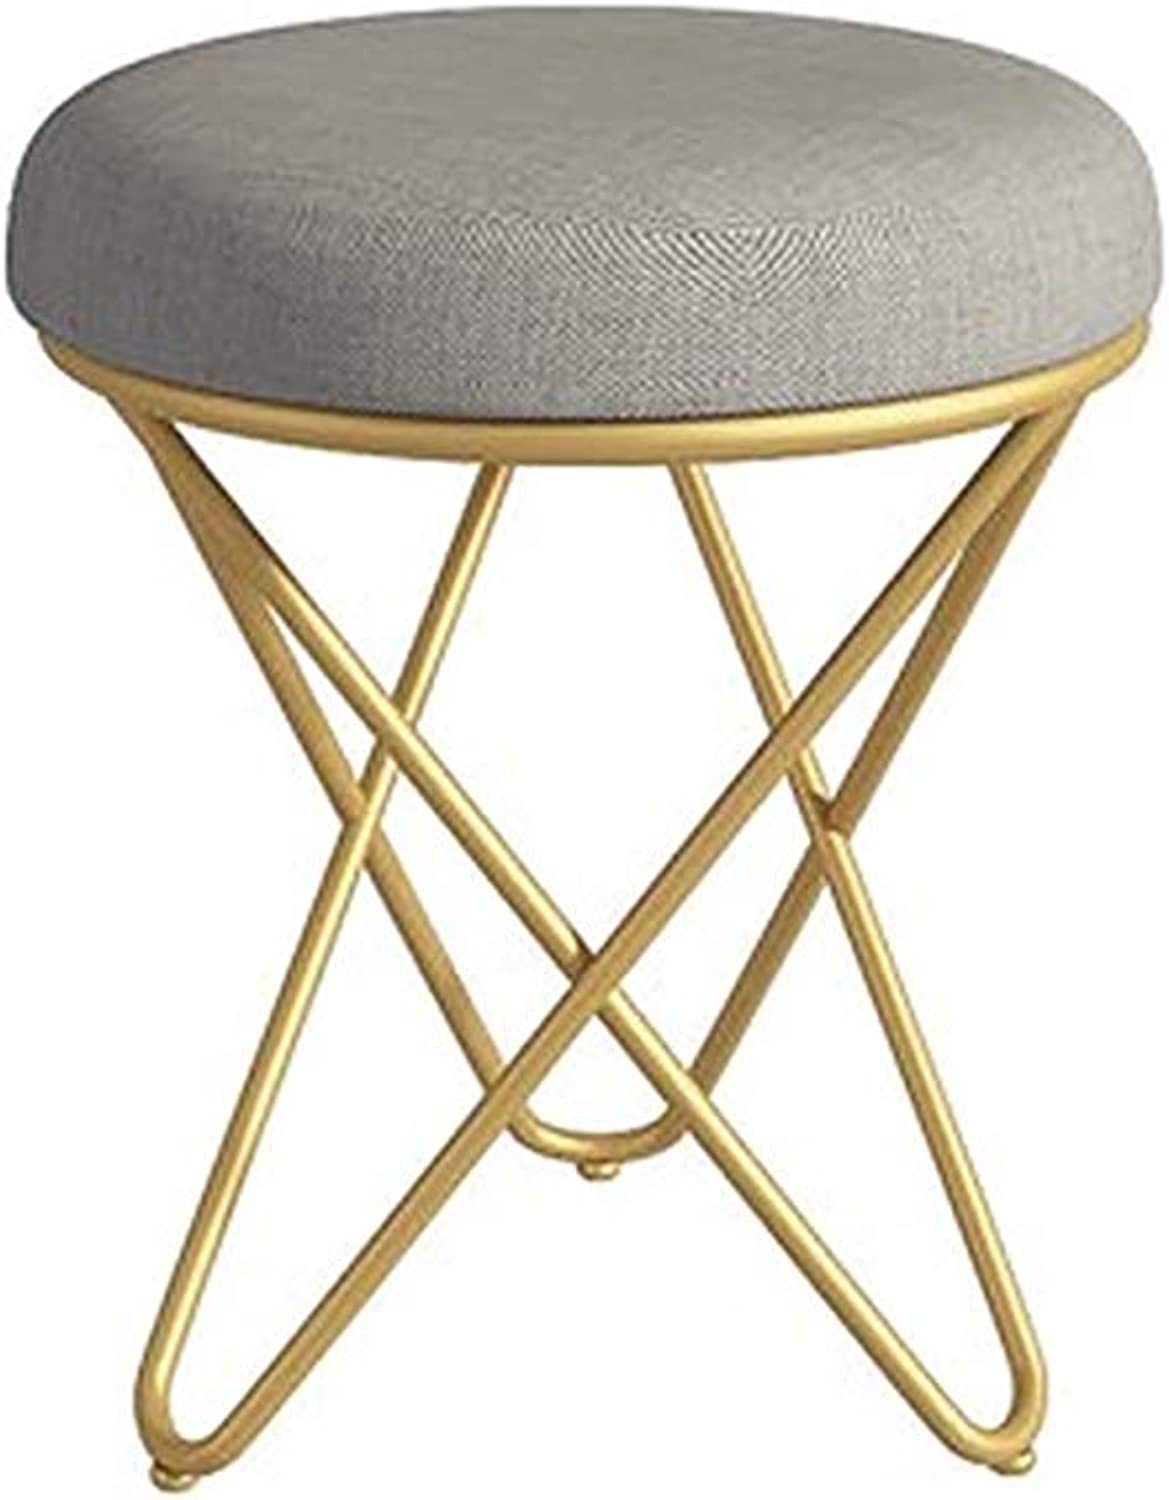 Small Round Stool Makeup Stool Dressing Table Chair Household Stool Soft Surface Modern Minimalist Short Iron Stool